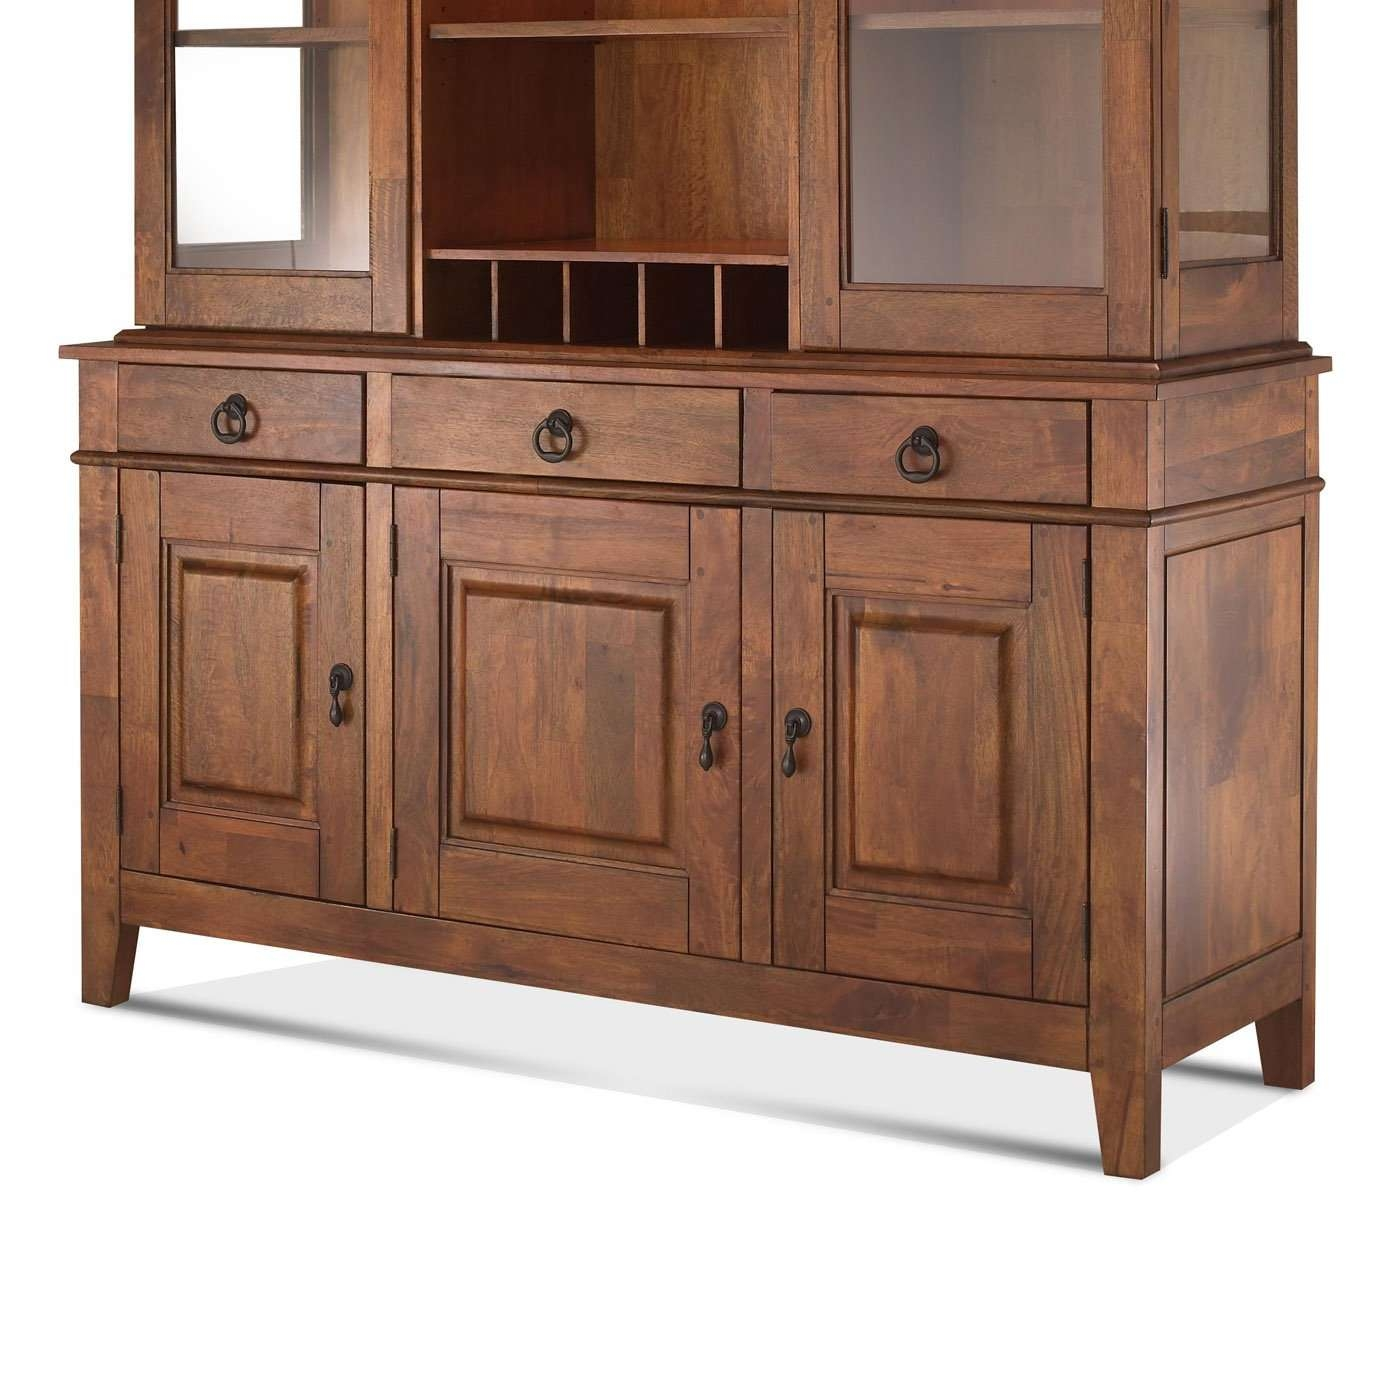 Unique Dining Room Buffets Sideboards – Bjdgjy Intended For Glass Door Buffet Sideboards (View 17 of 20)